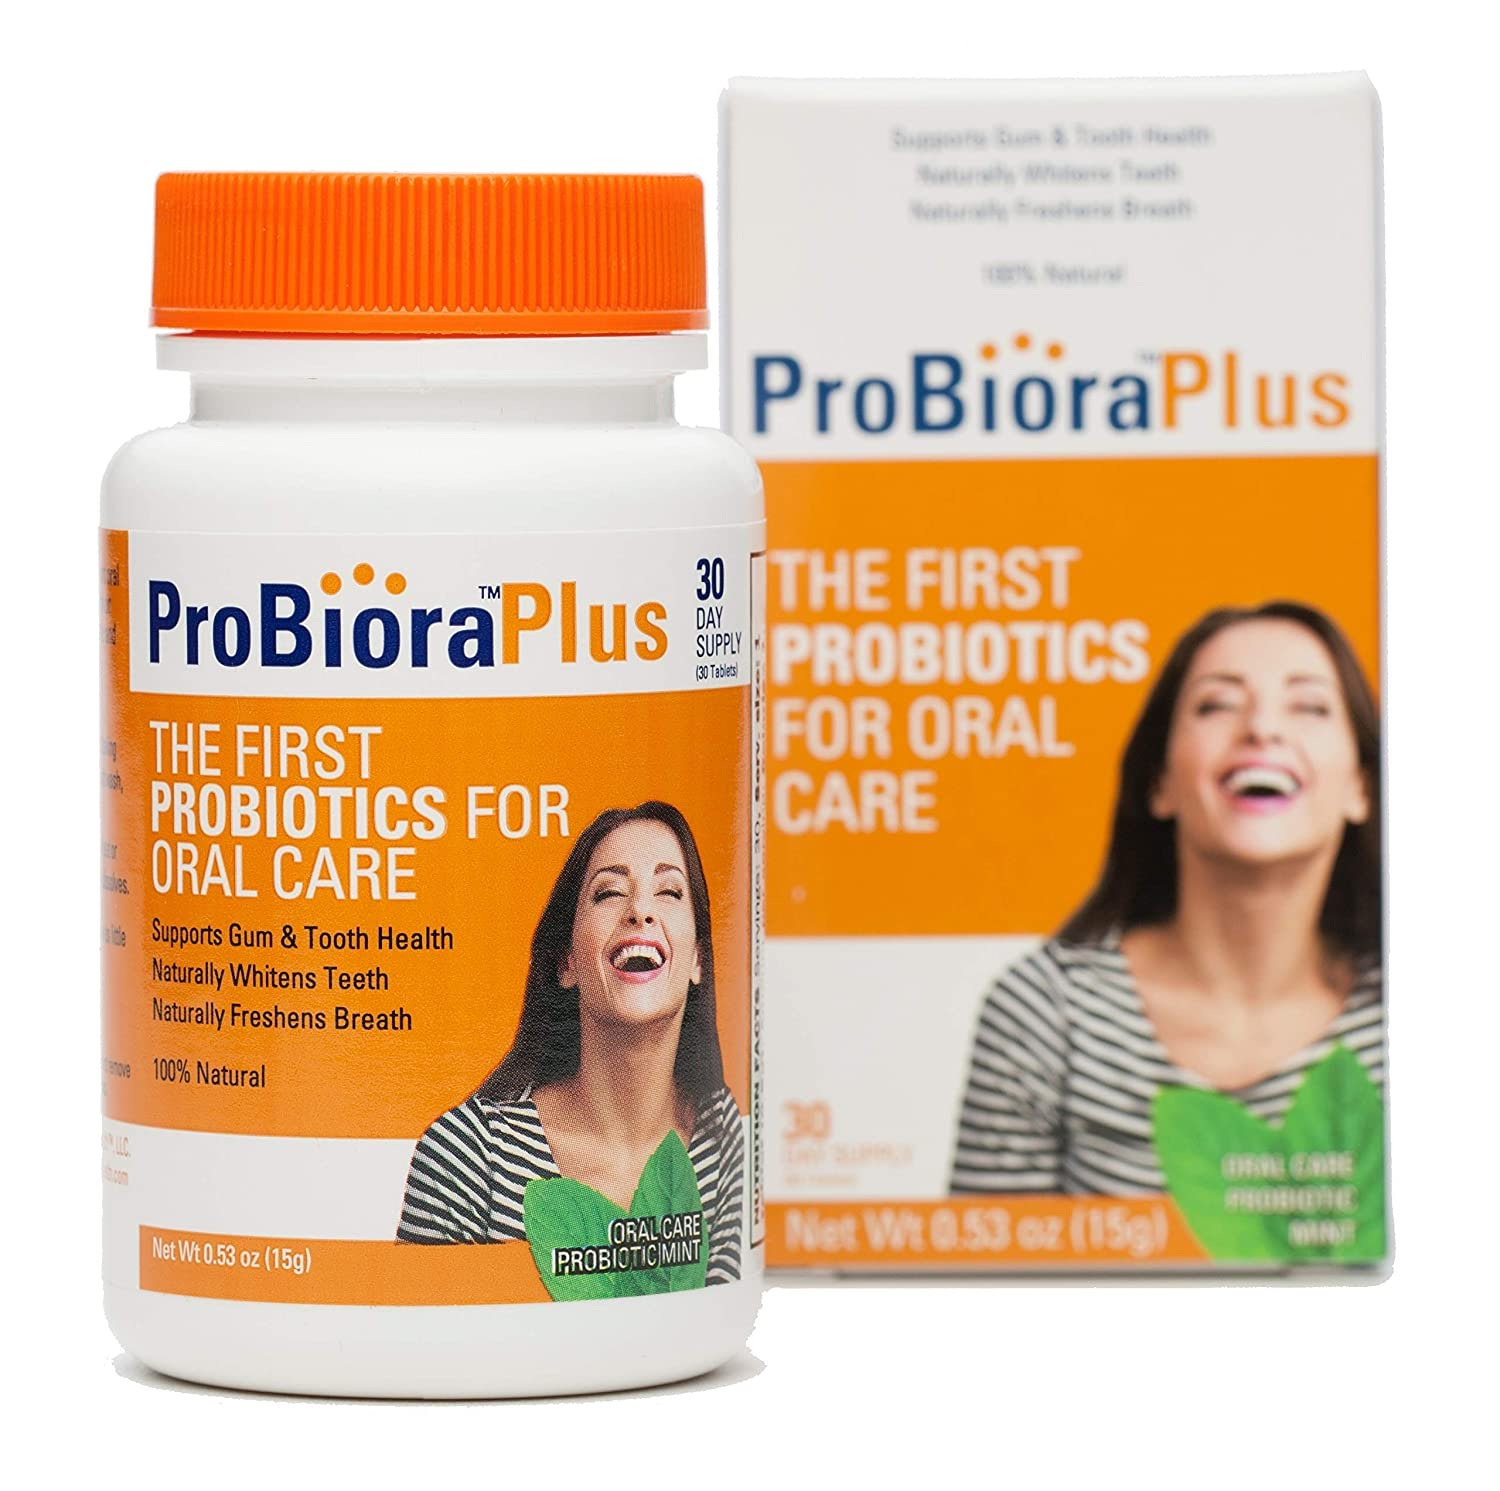 a bottle of ProBiora Plus oral probiotics great for oral and gut health